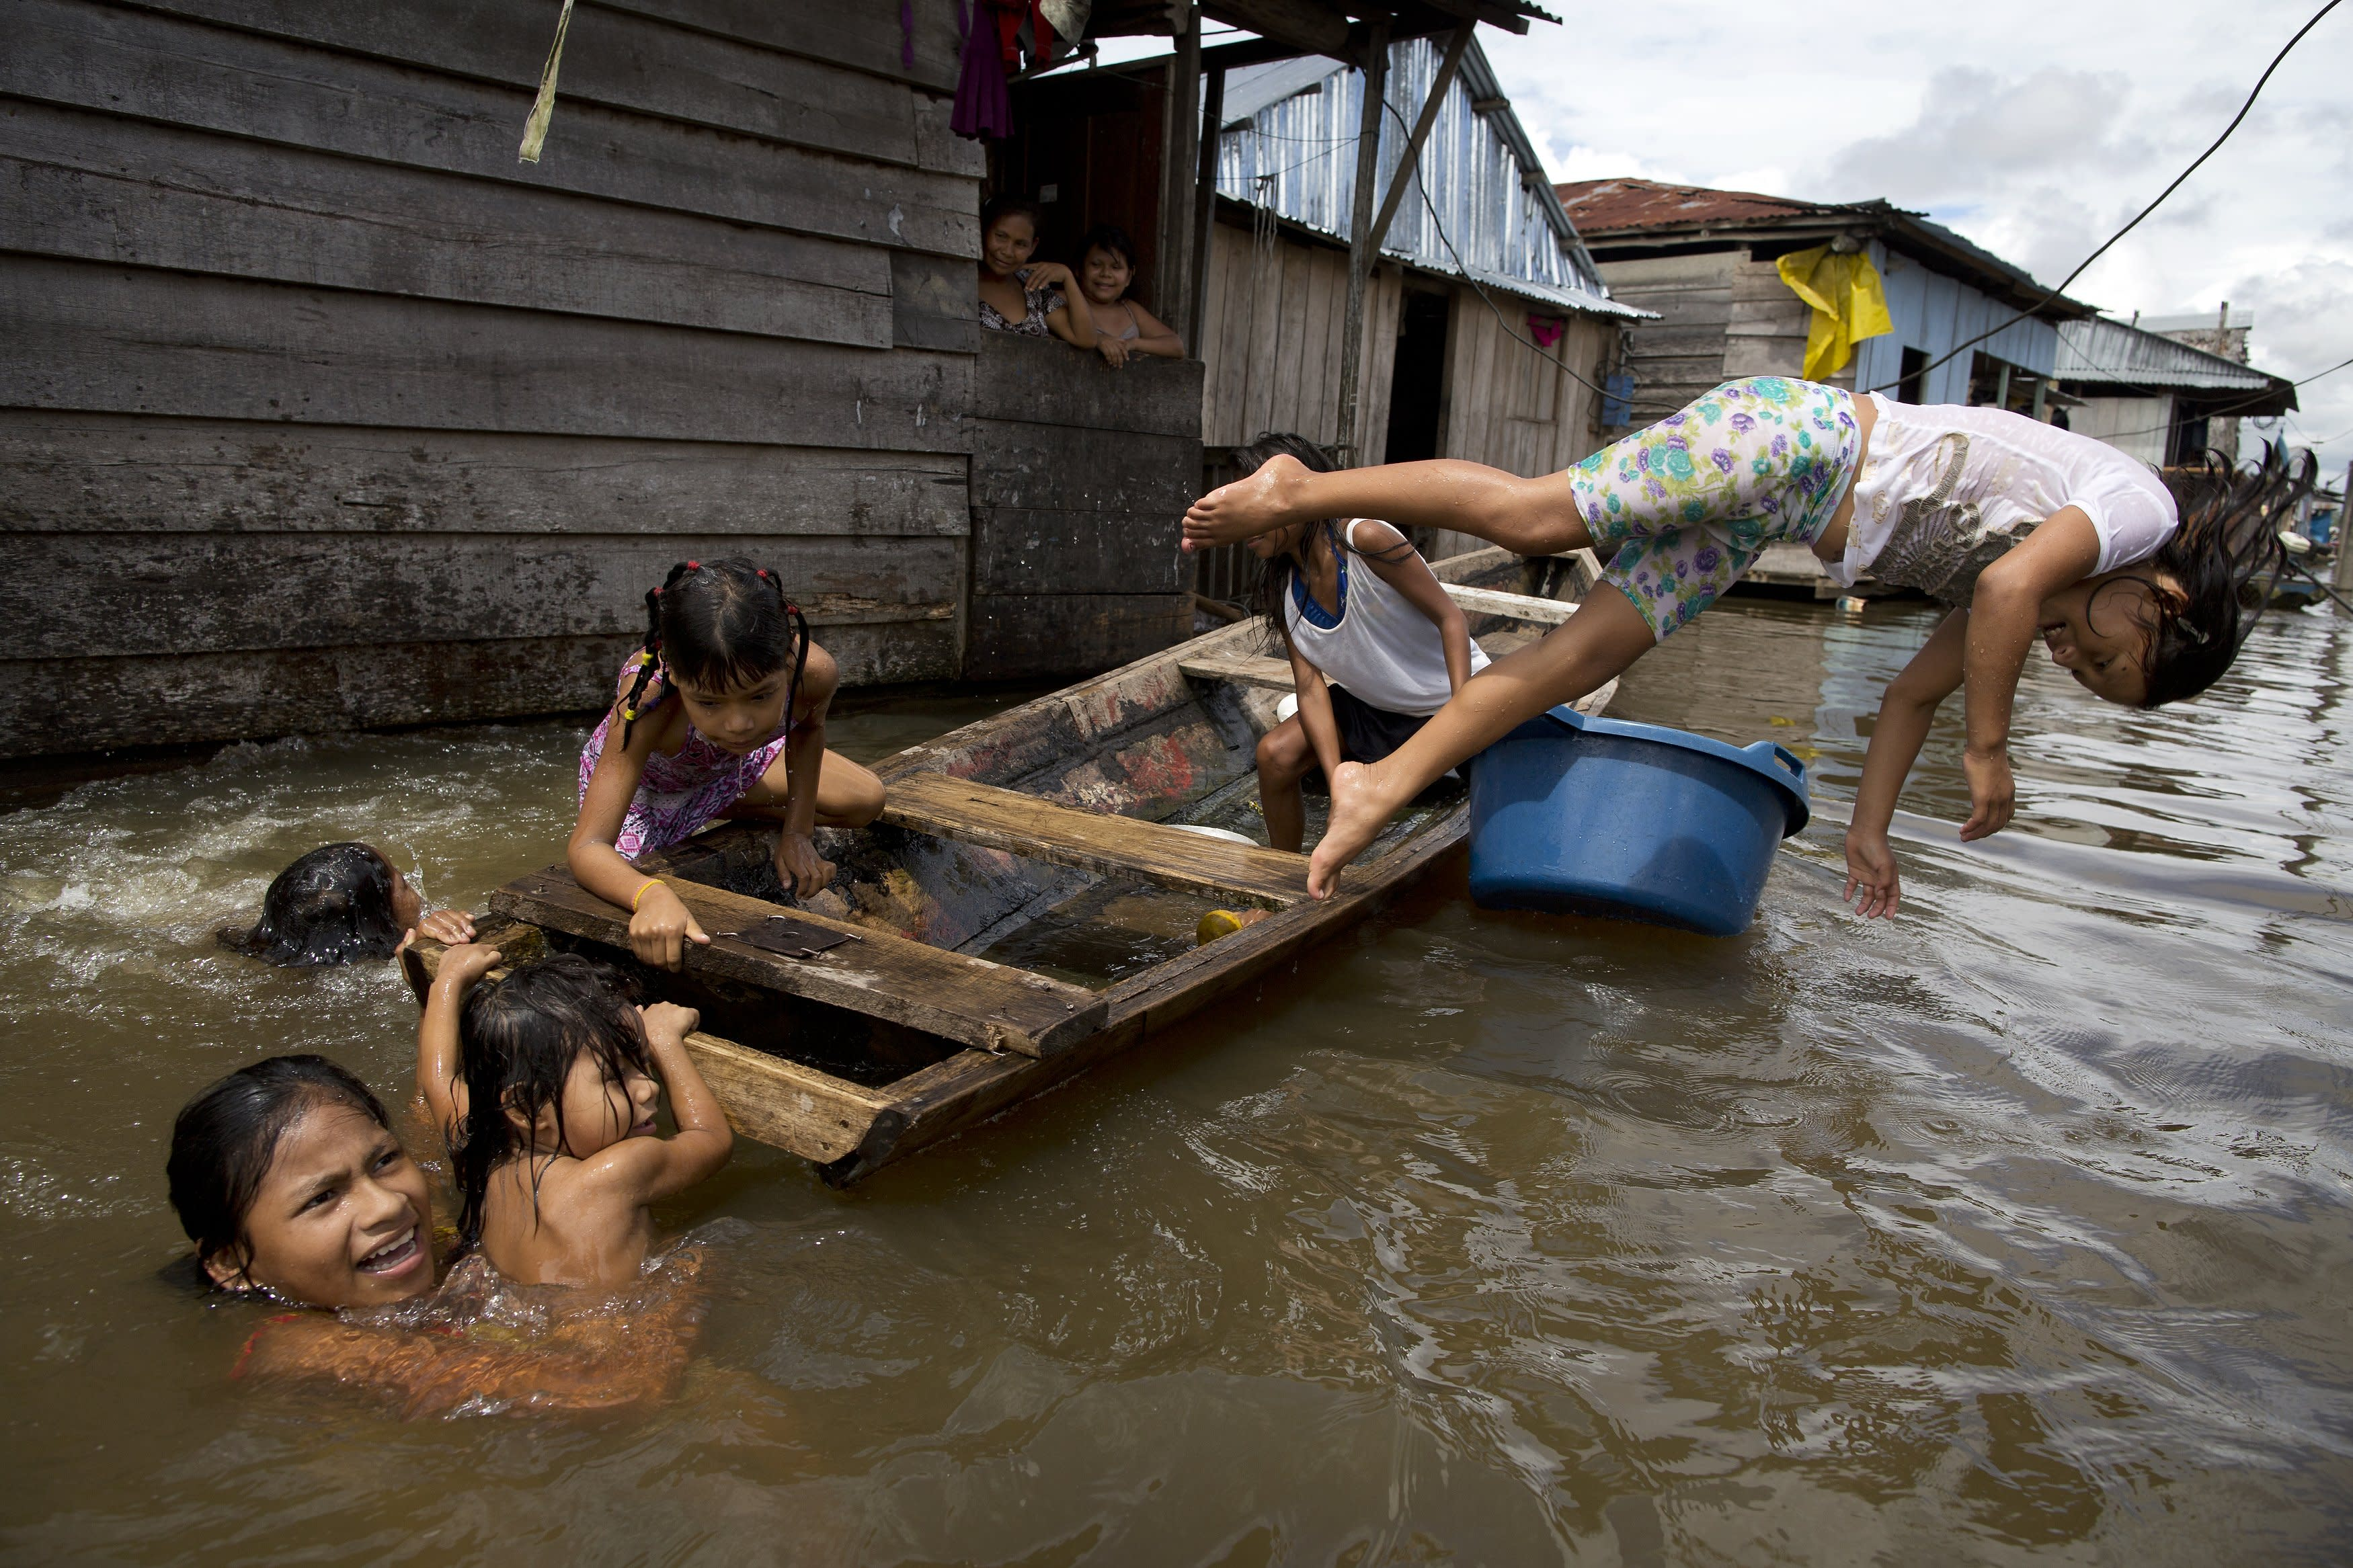 AP PHOTOS: Peruvian community lives half-year on the water